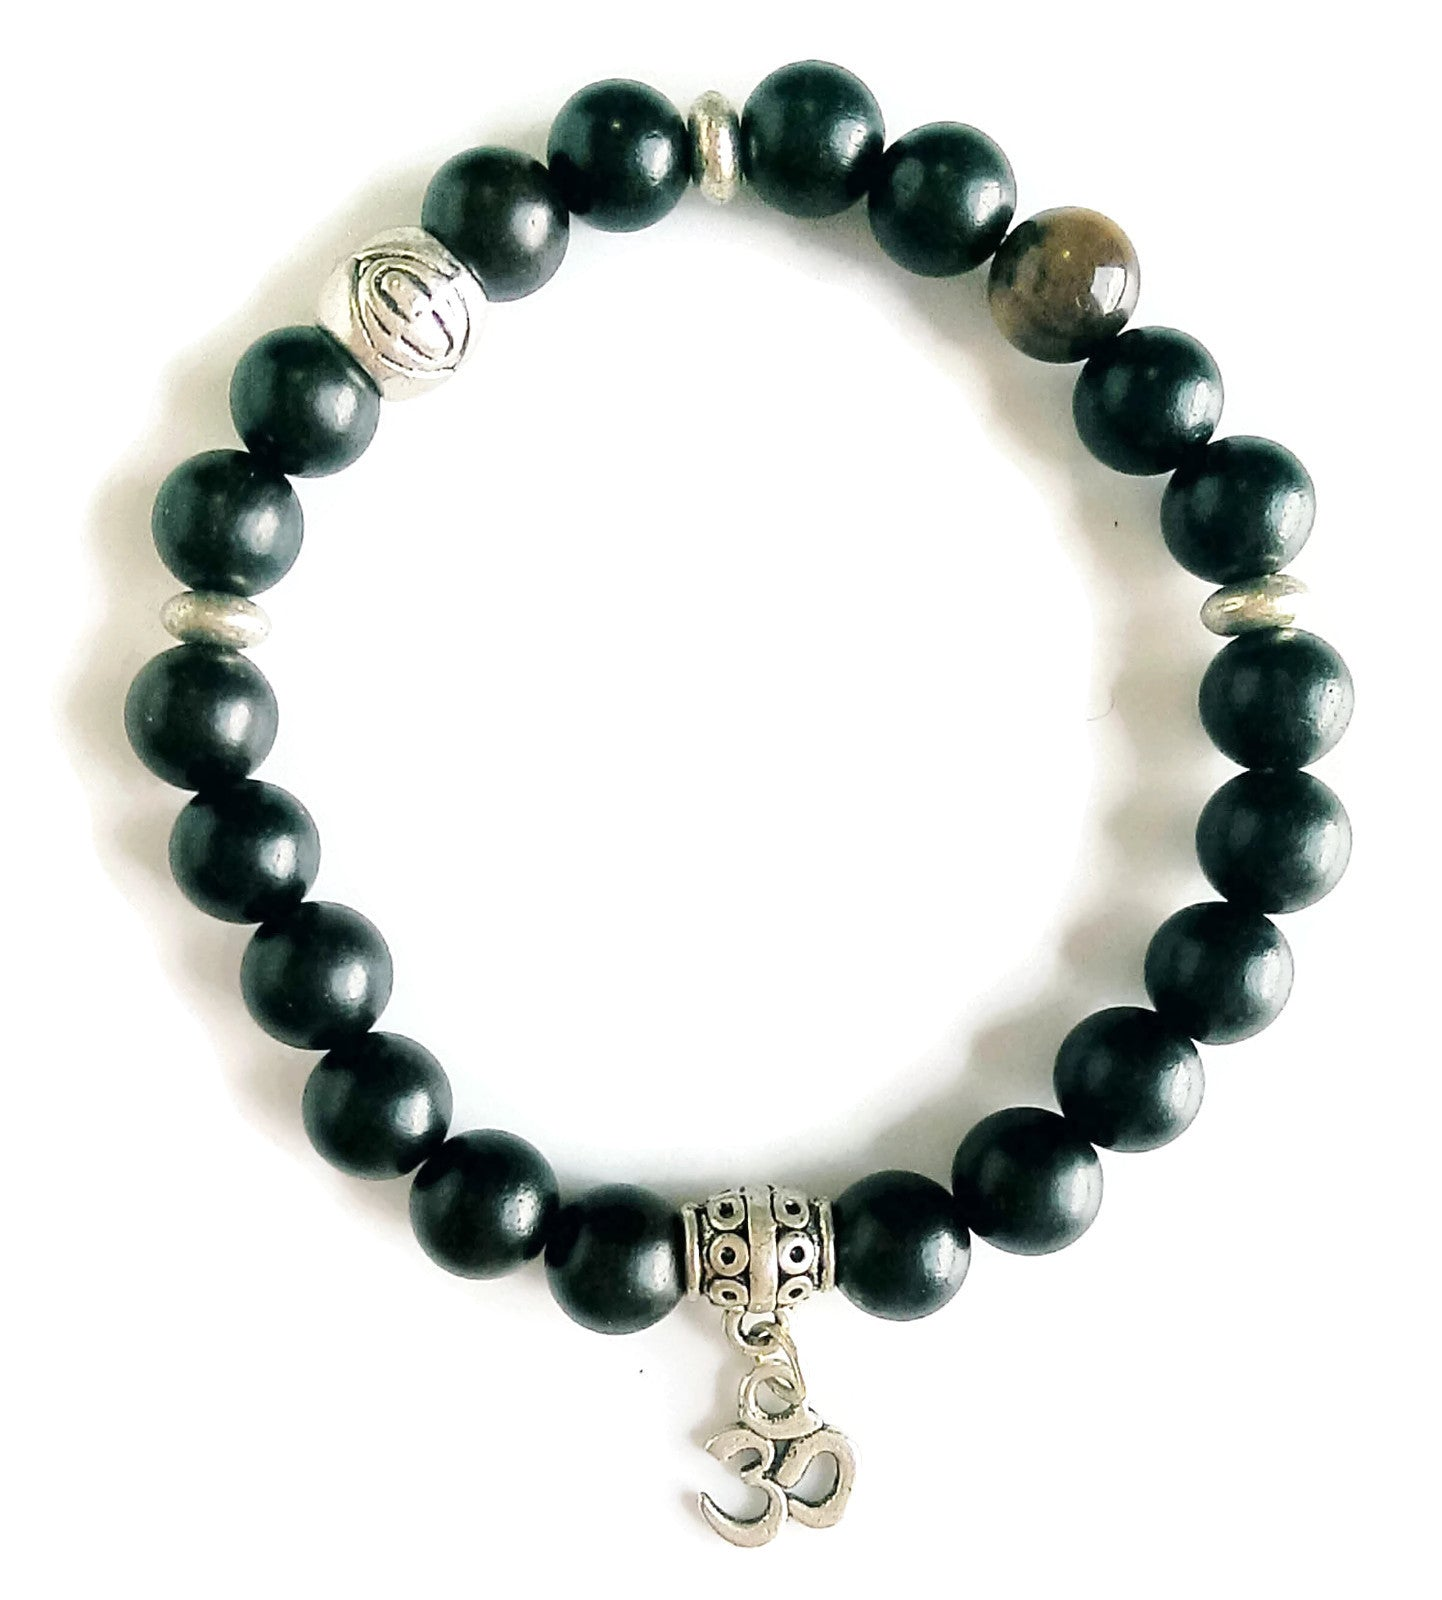 8mm Black Ice Obsidian Stone Bead Stretch Stackable Yoga Meditation Wrist Mala Focus Energy Bracelet Silver Lotus OM Charm Root Base Chakra